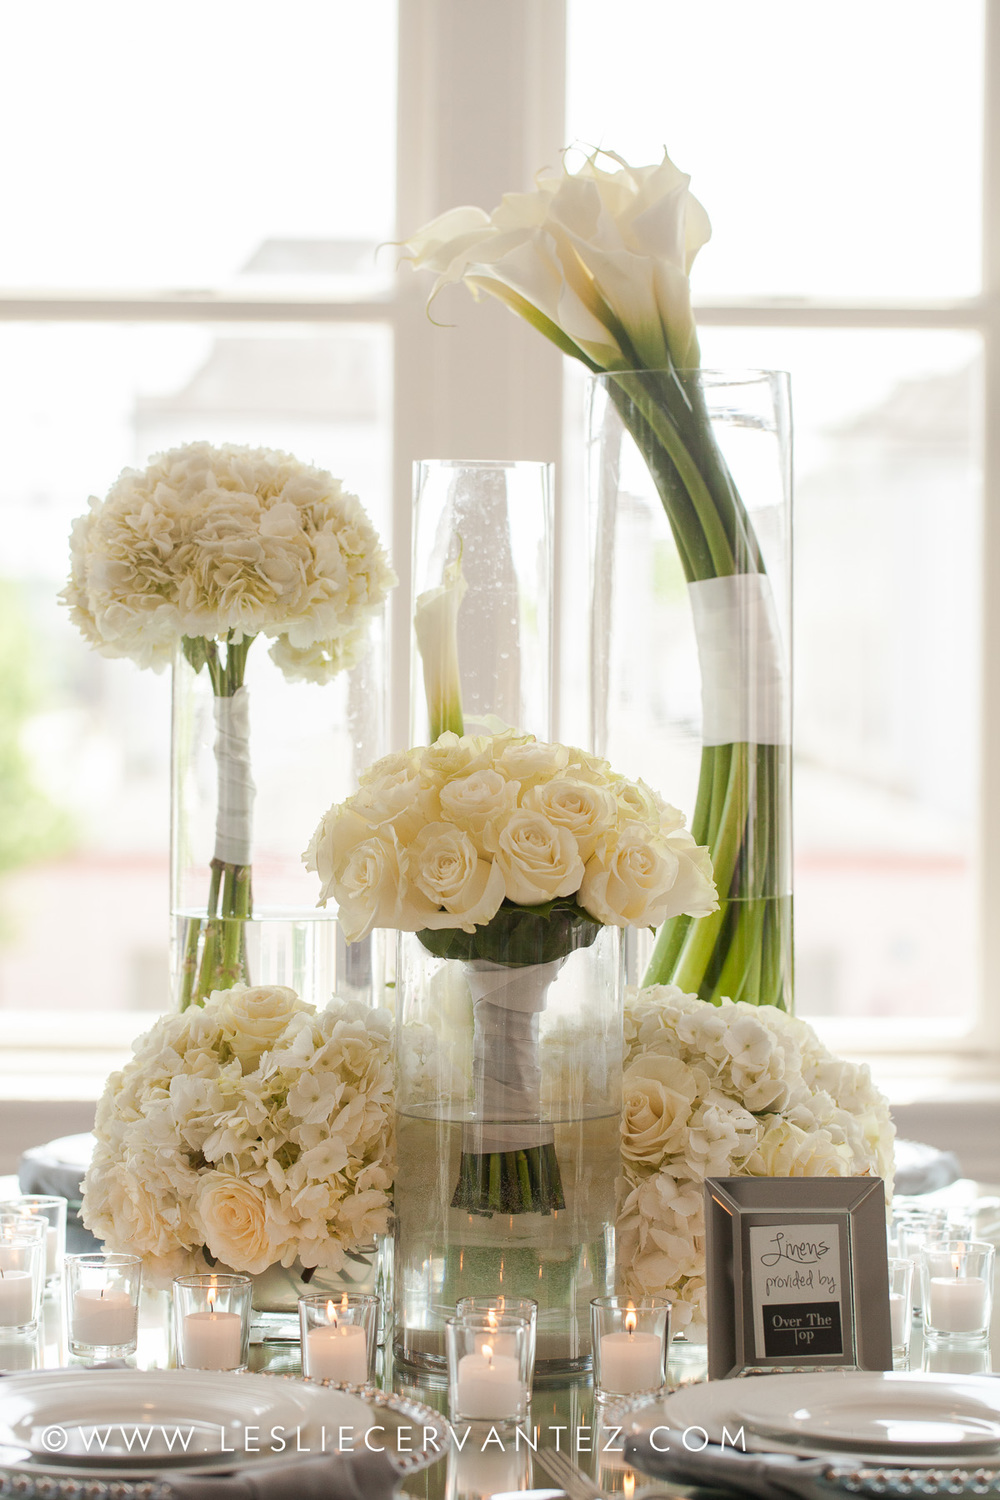 Flowers provided by Flora & Eventi